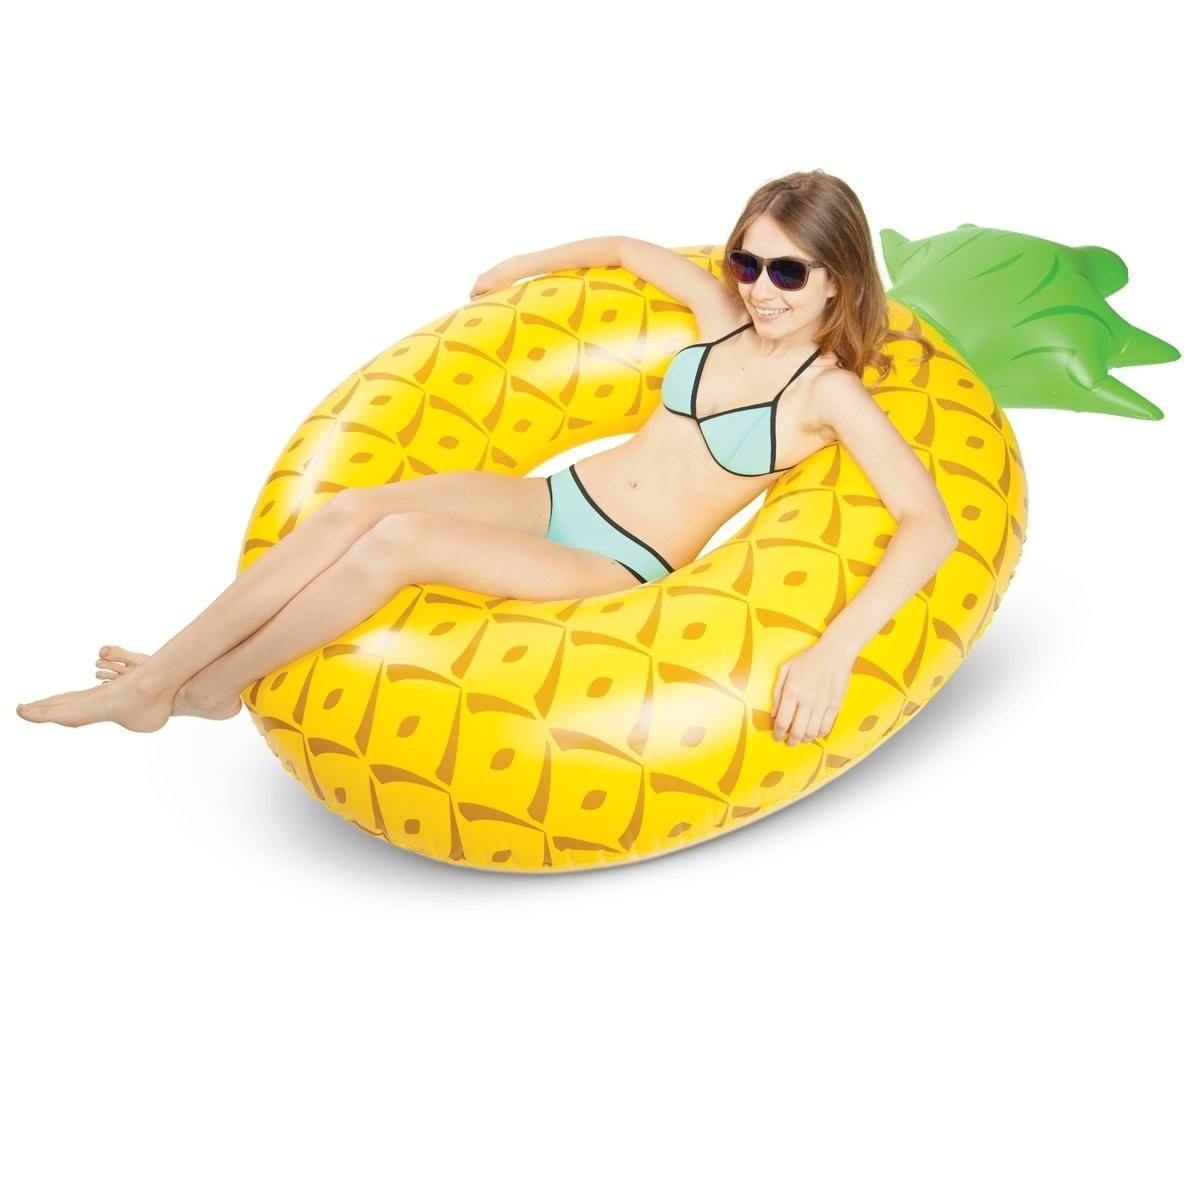 Amazing pineaple float to drink your piña colada on - $24.99